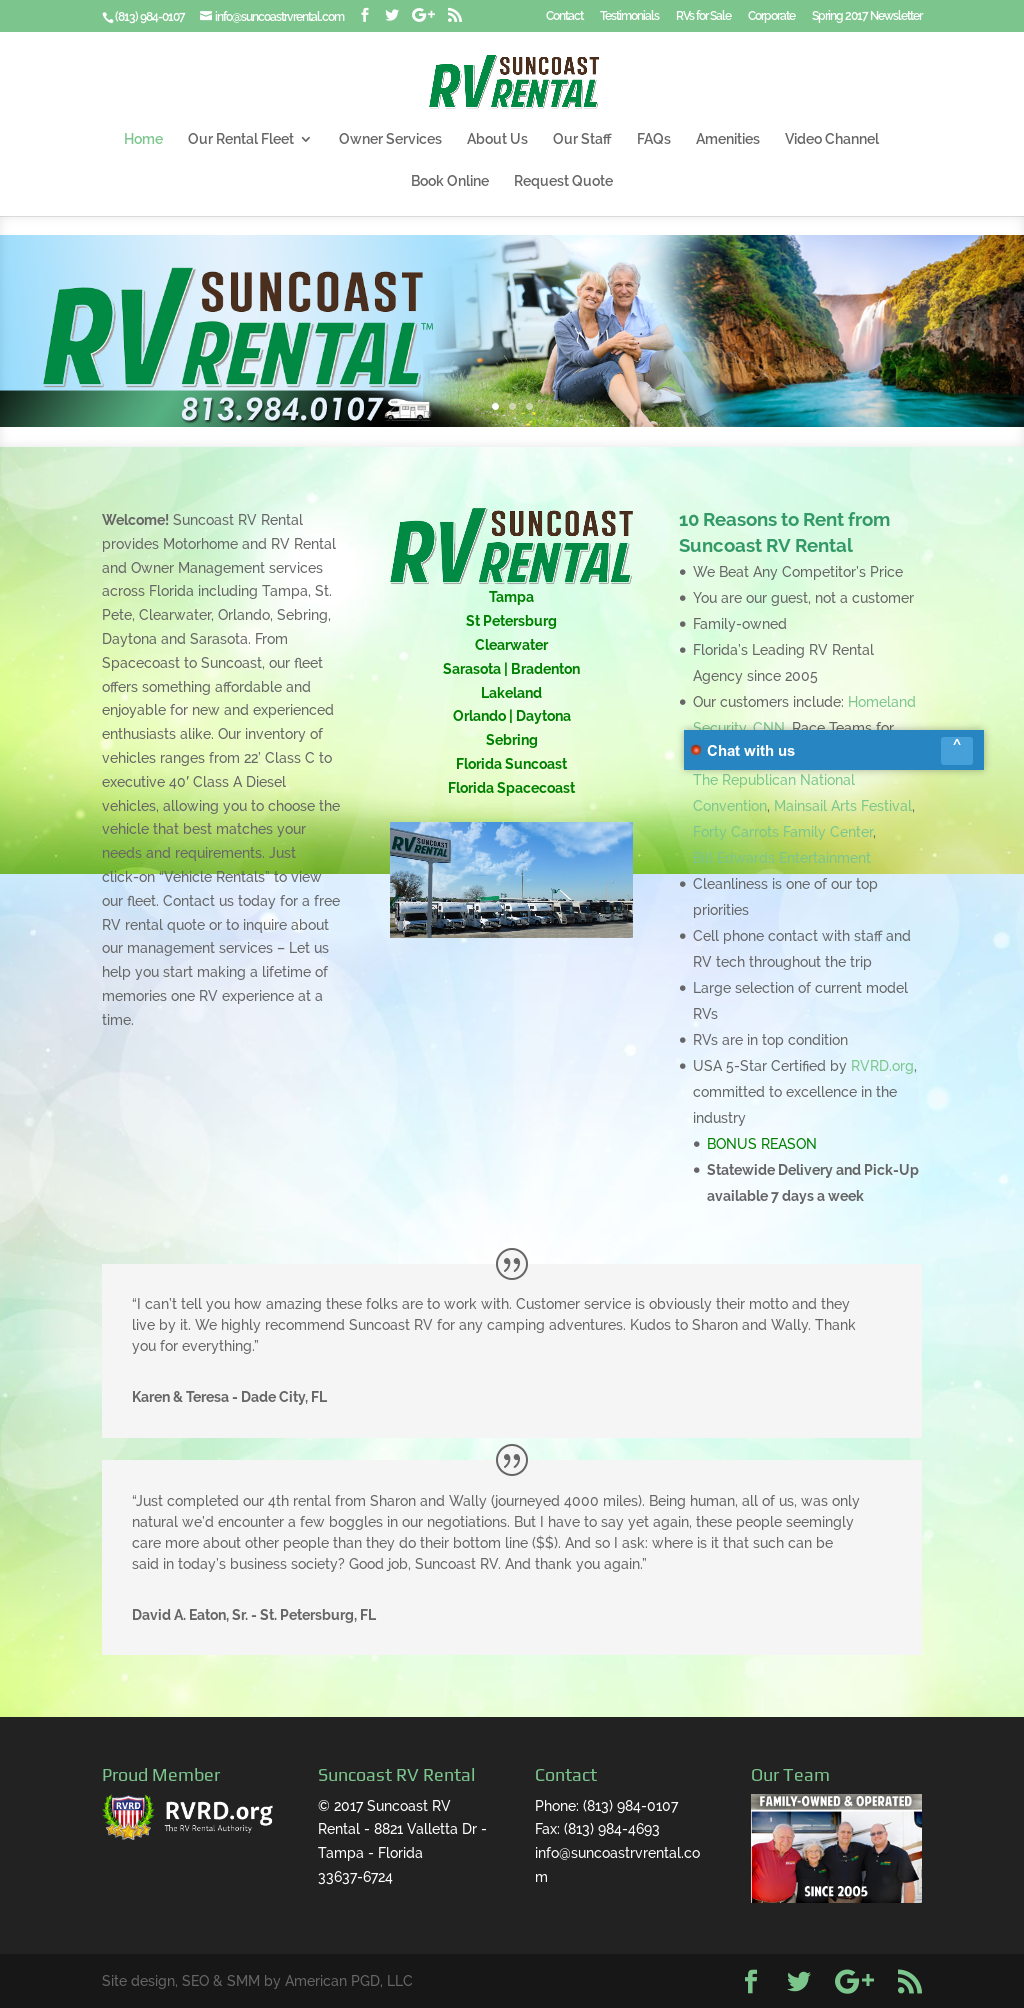 Suncoast Rv Rentals & Management Competitors, Revenue and Employees